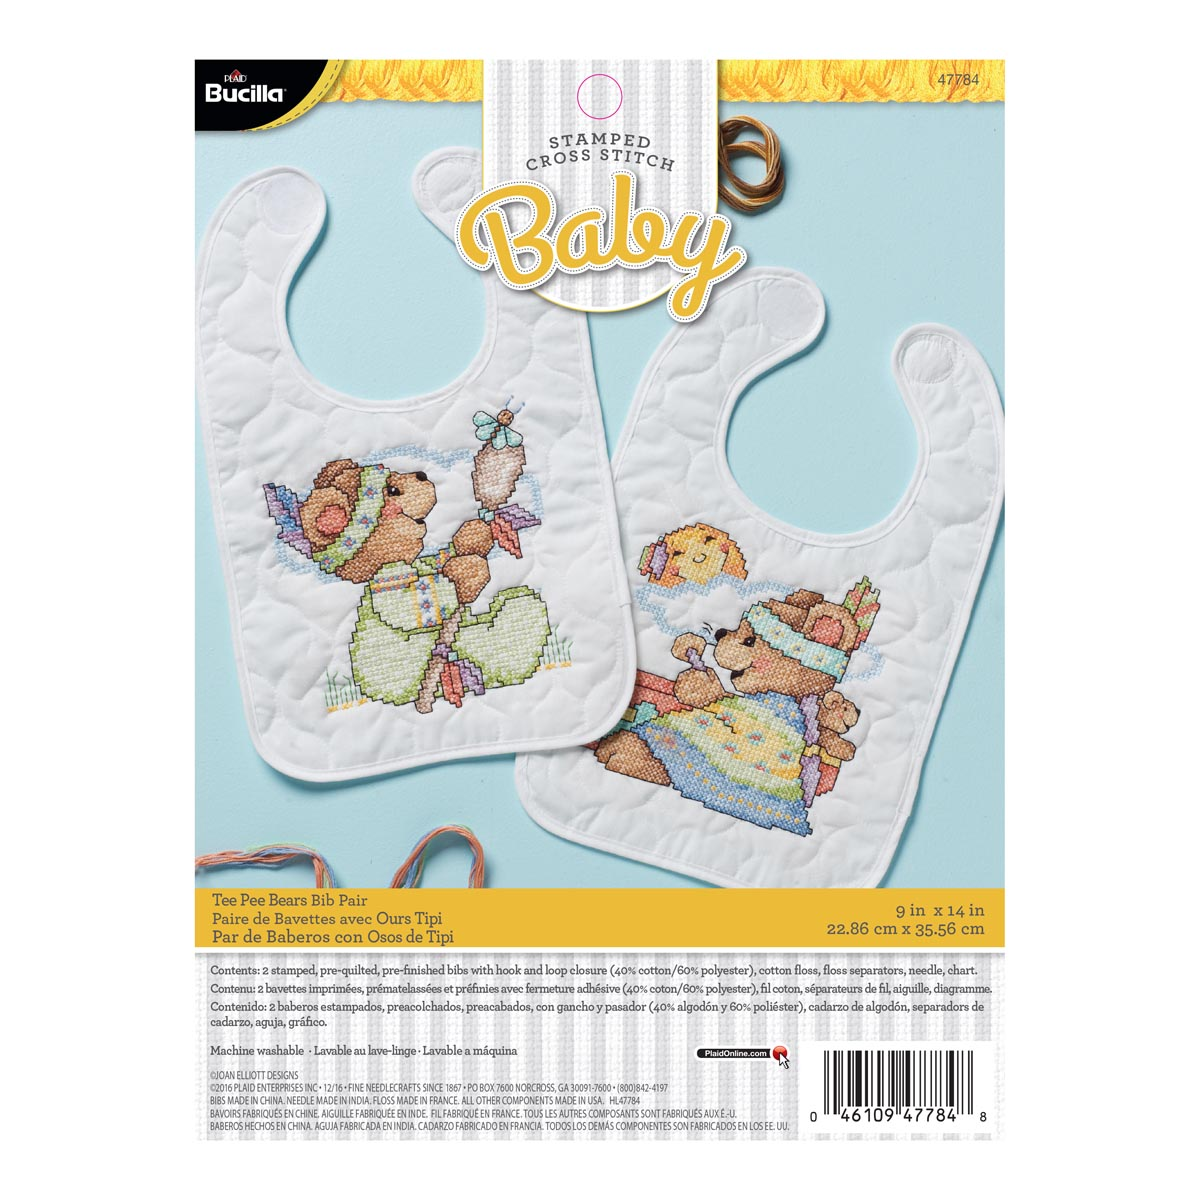 Bucilla ® Baby - Stamped Cross Stitch - Crib Ensembles - Tee Pee Bears Bib Pair Kit